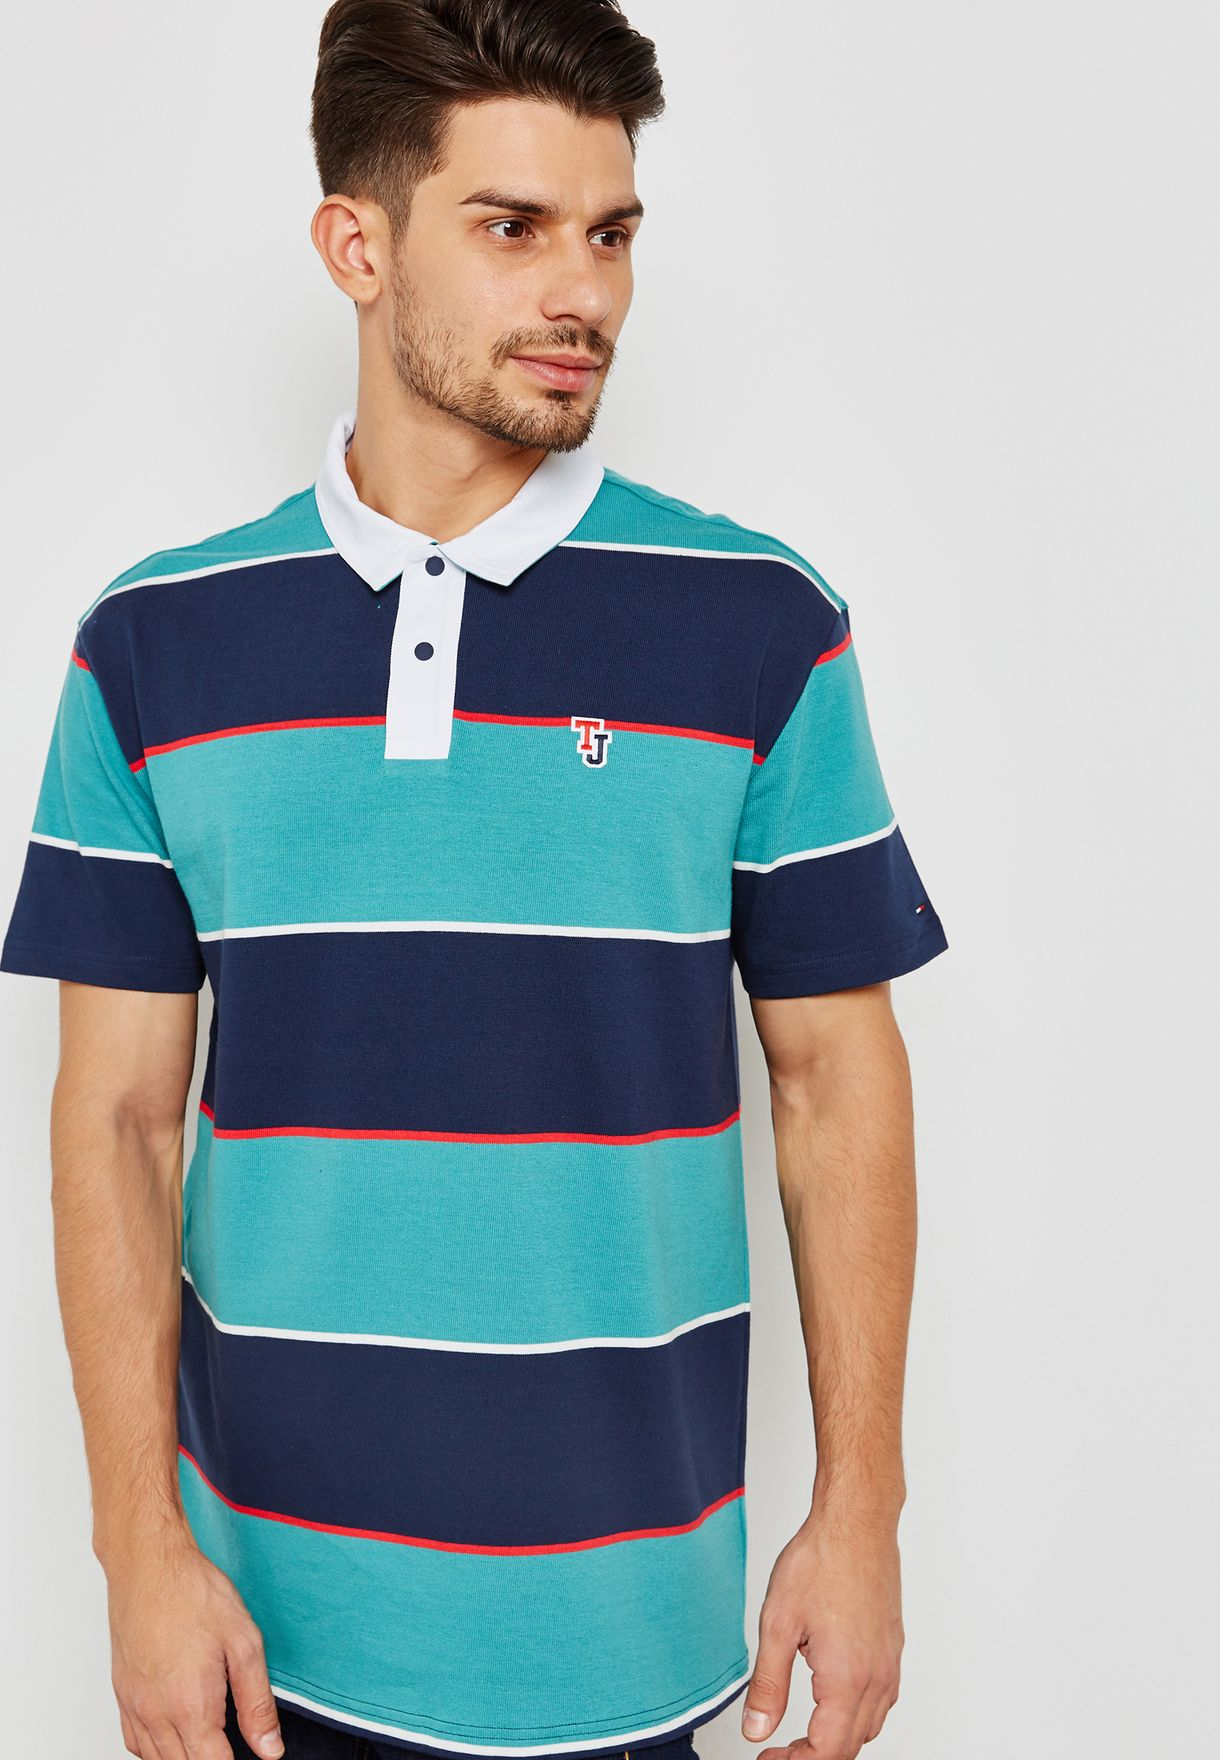 6848c2f46d3 Shop Tommy Jeans multicolor Block Stripe Rugby Polo DM0DM04502 for ...